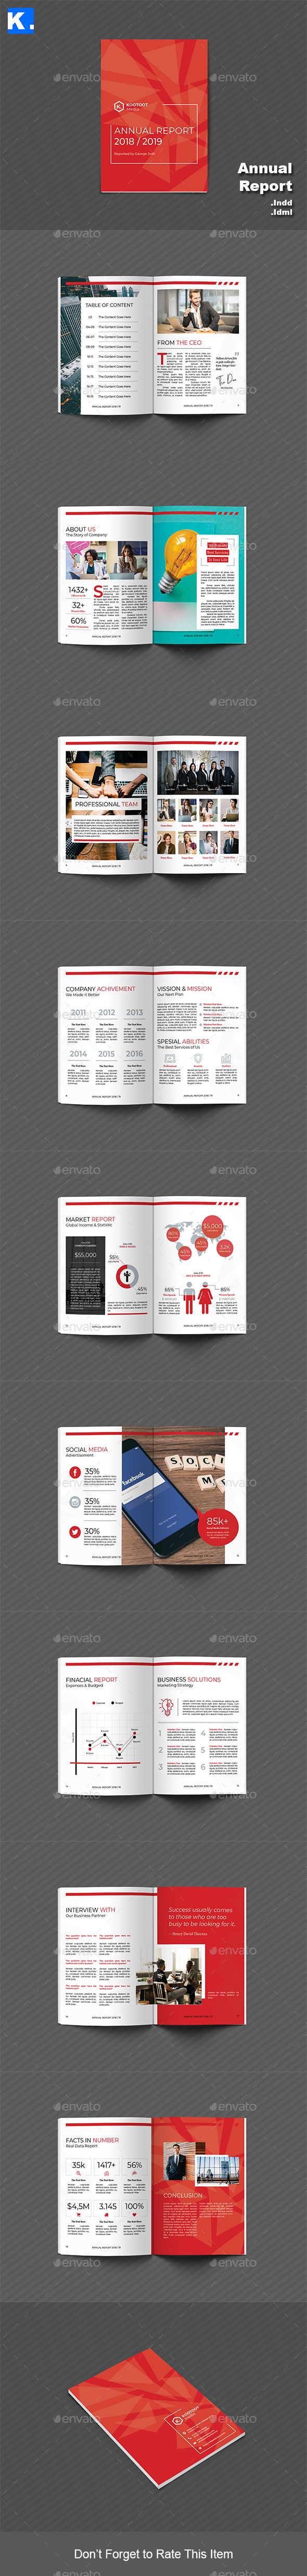 Annual Report Template 1 - Informational Brochures